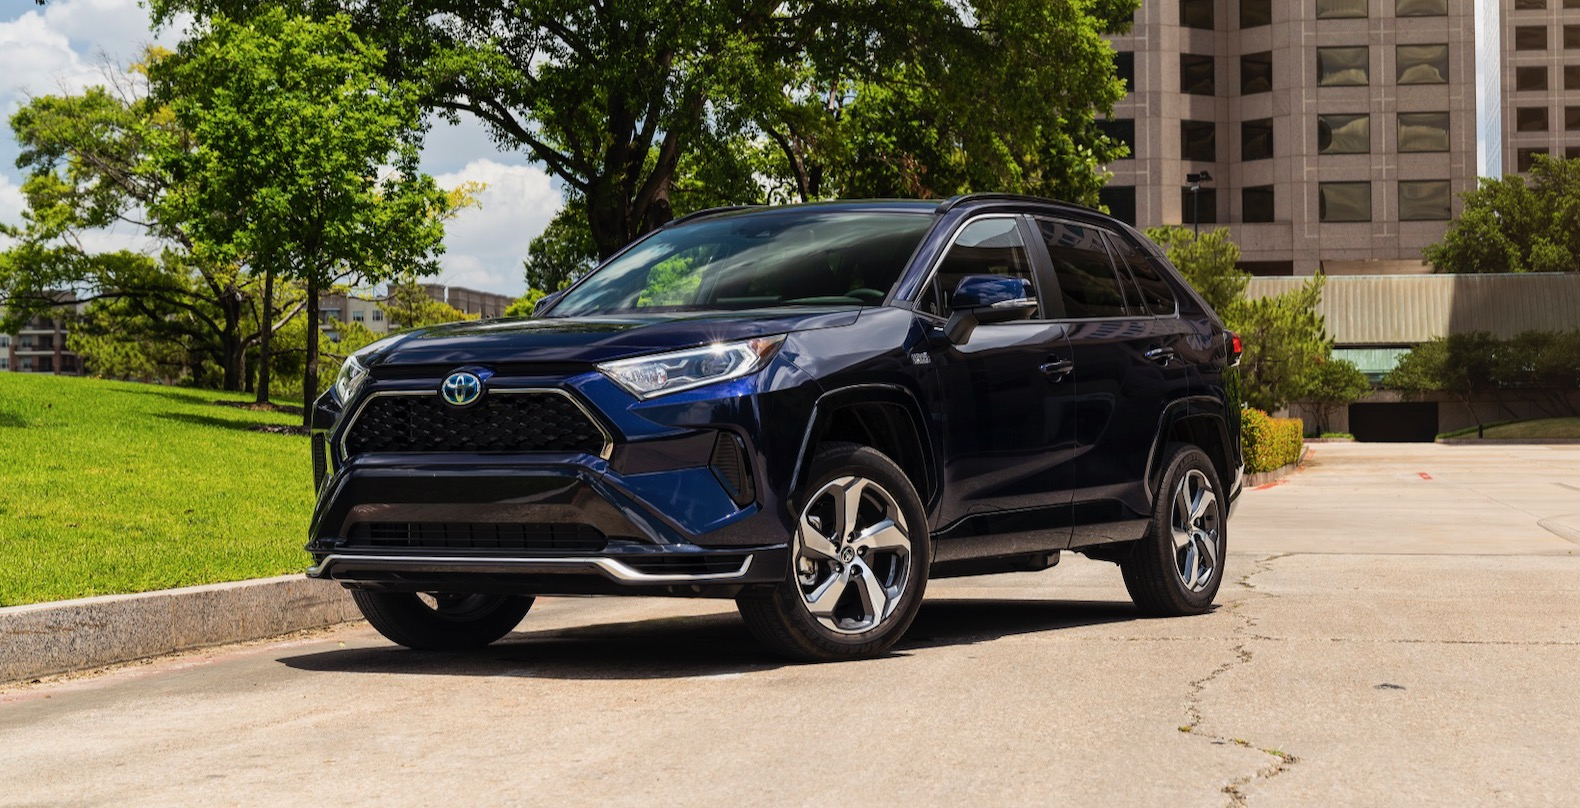 Best Prime Deals 2021 2021 Toyota RAV4 Prime First Drive: The best RAV4 is a Plug in